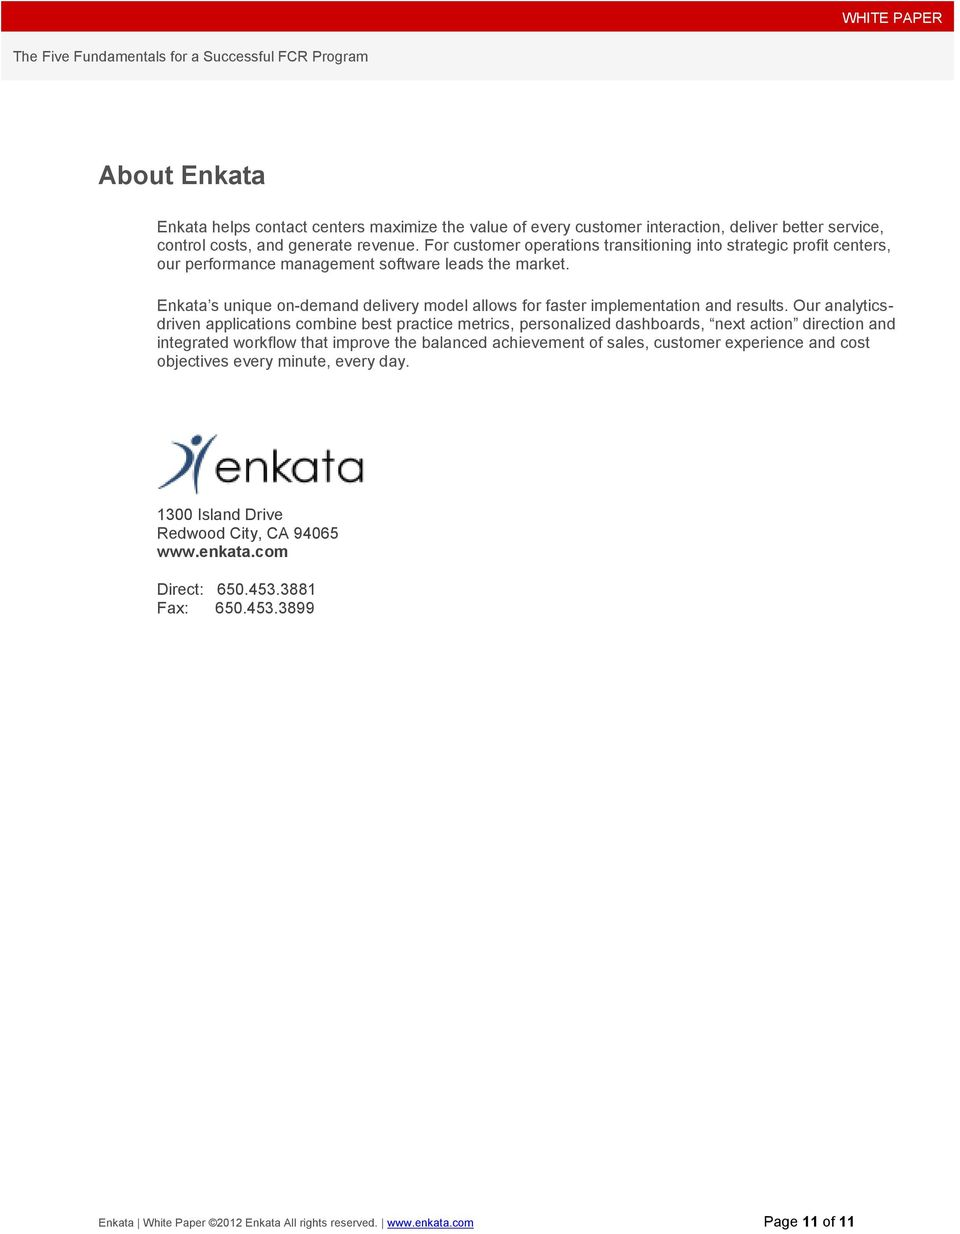 Enkata s unique on-demand delivery model allows for faster implementation and results.